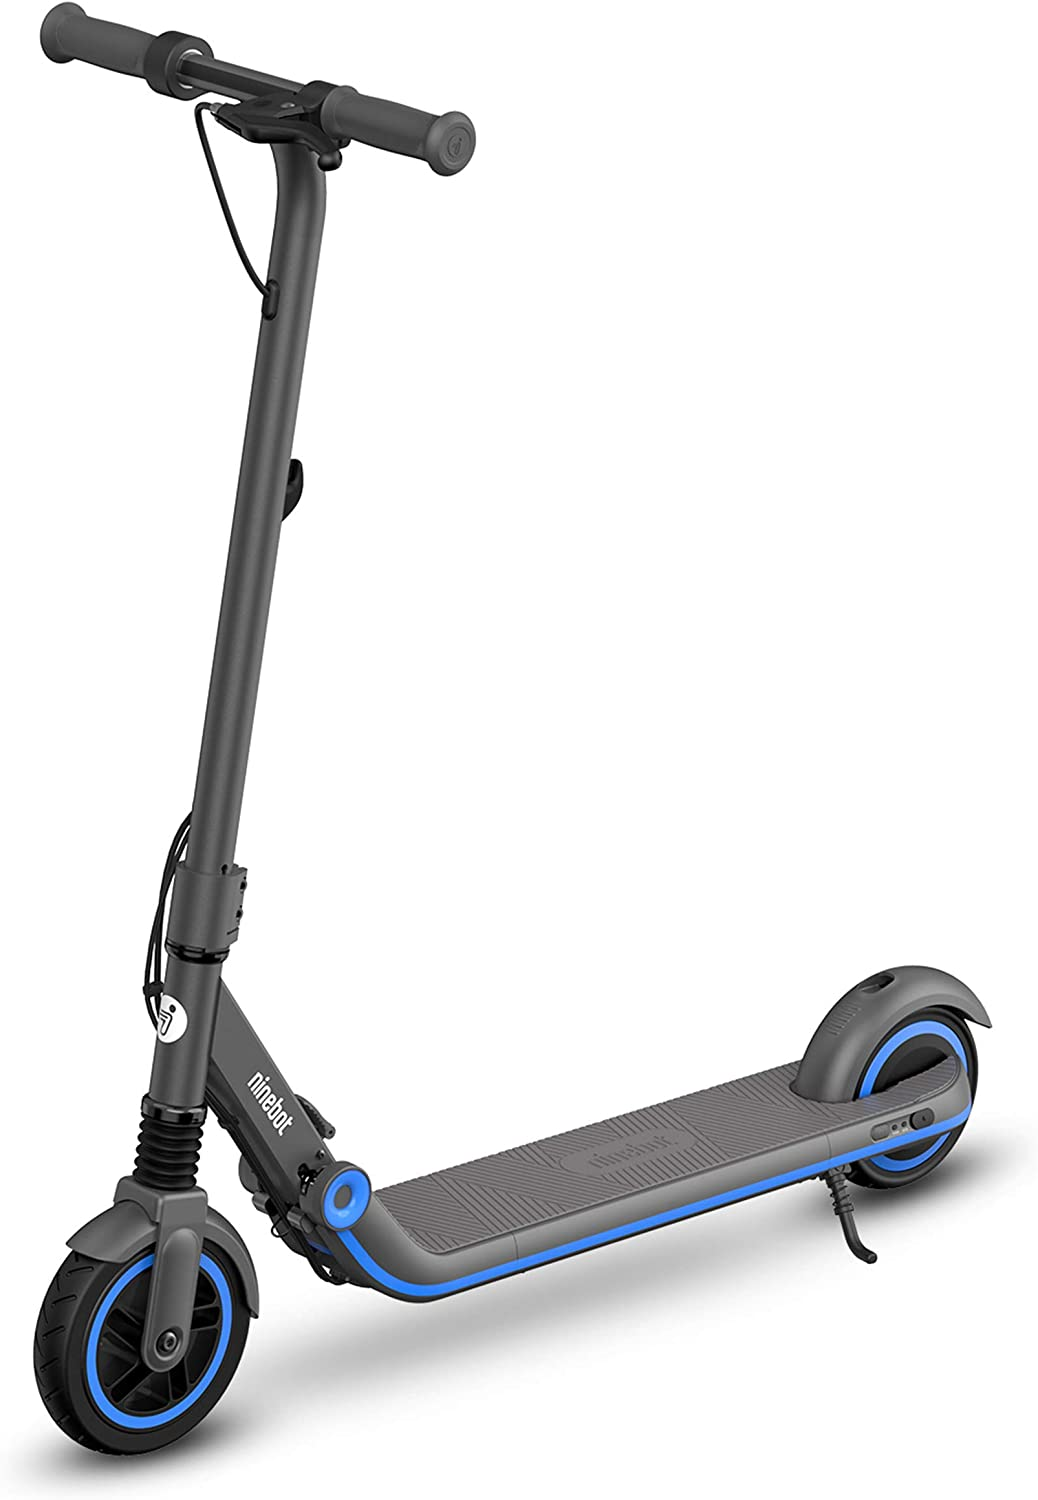 Top 10 Best Electric Scooters Under 300 [Buying Guide Reviews - 2021] 7